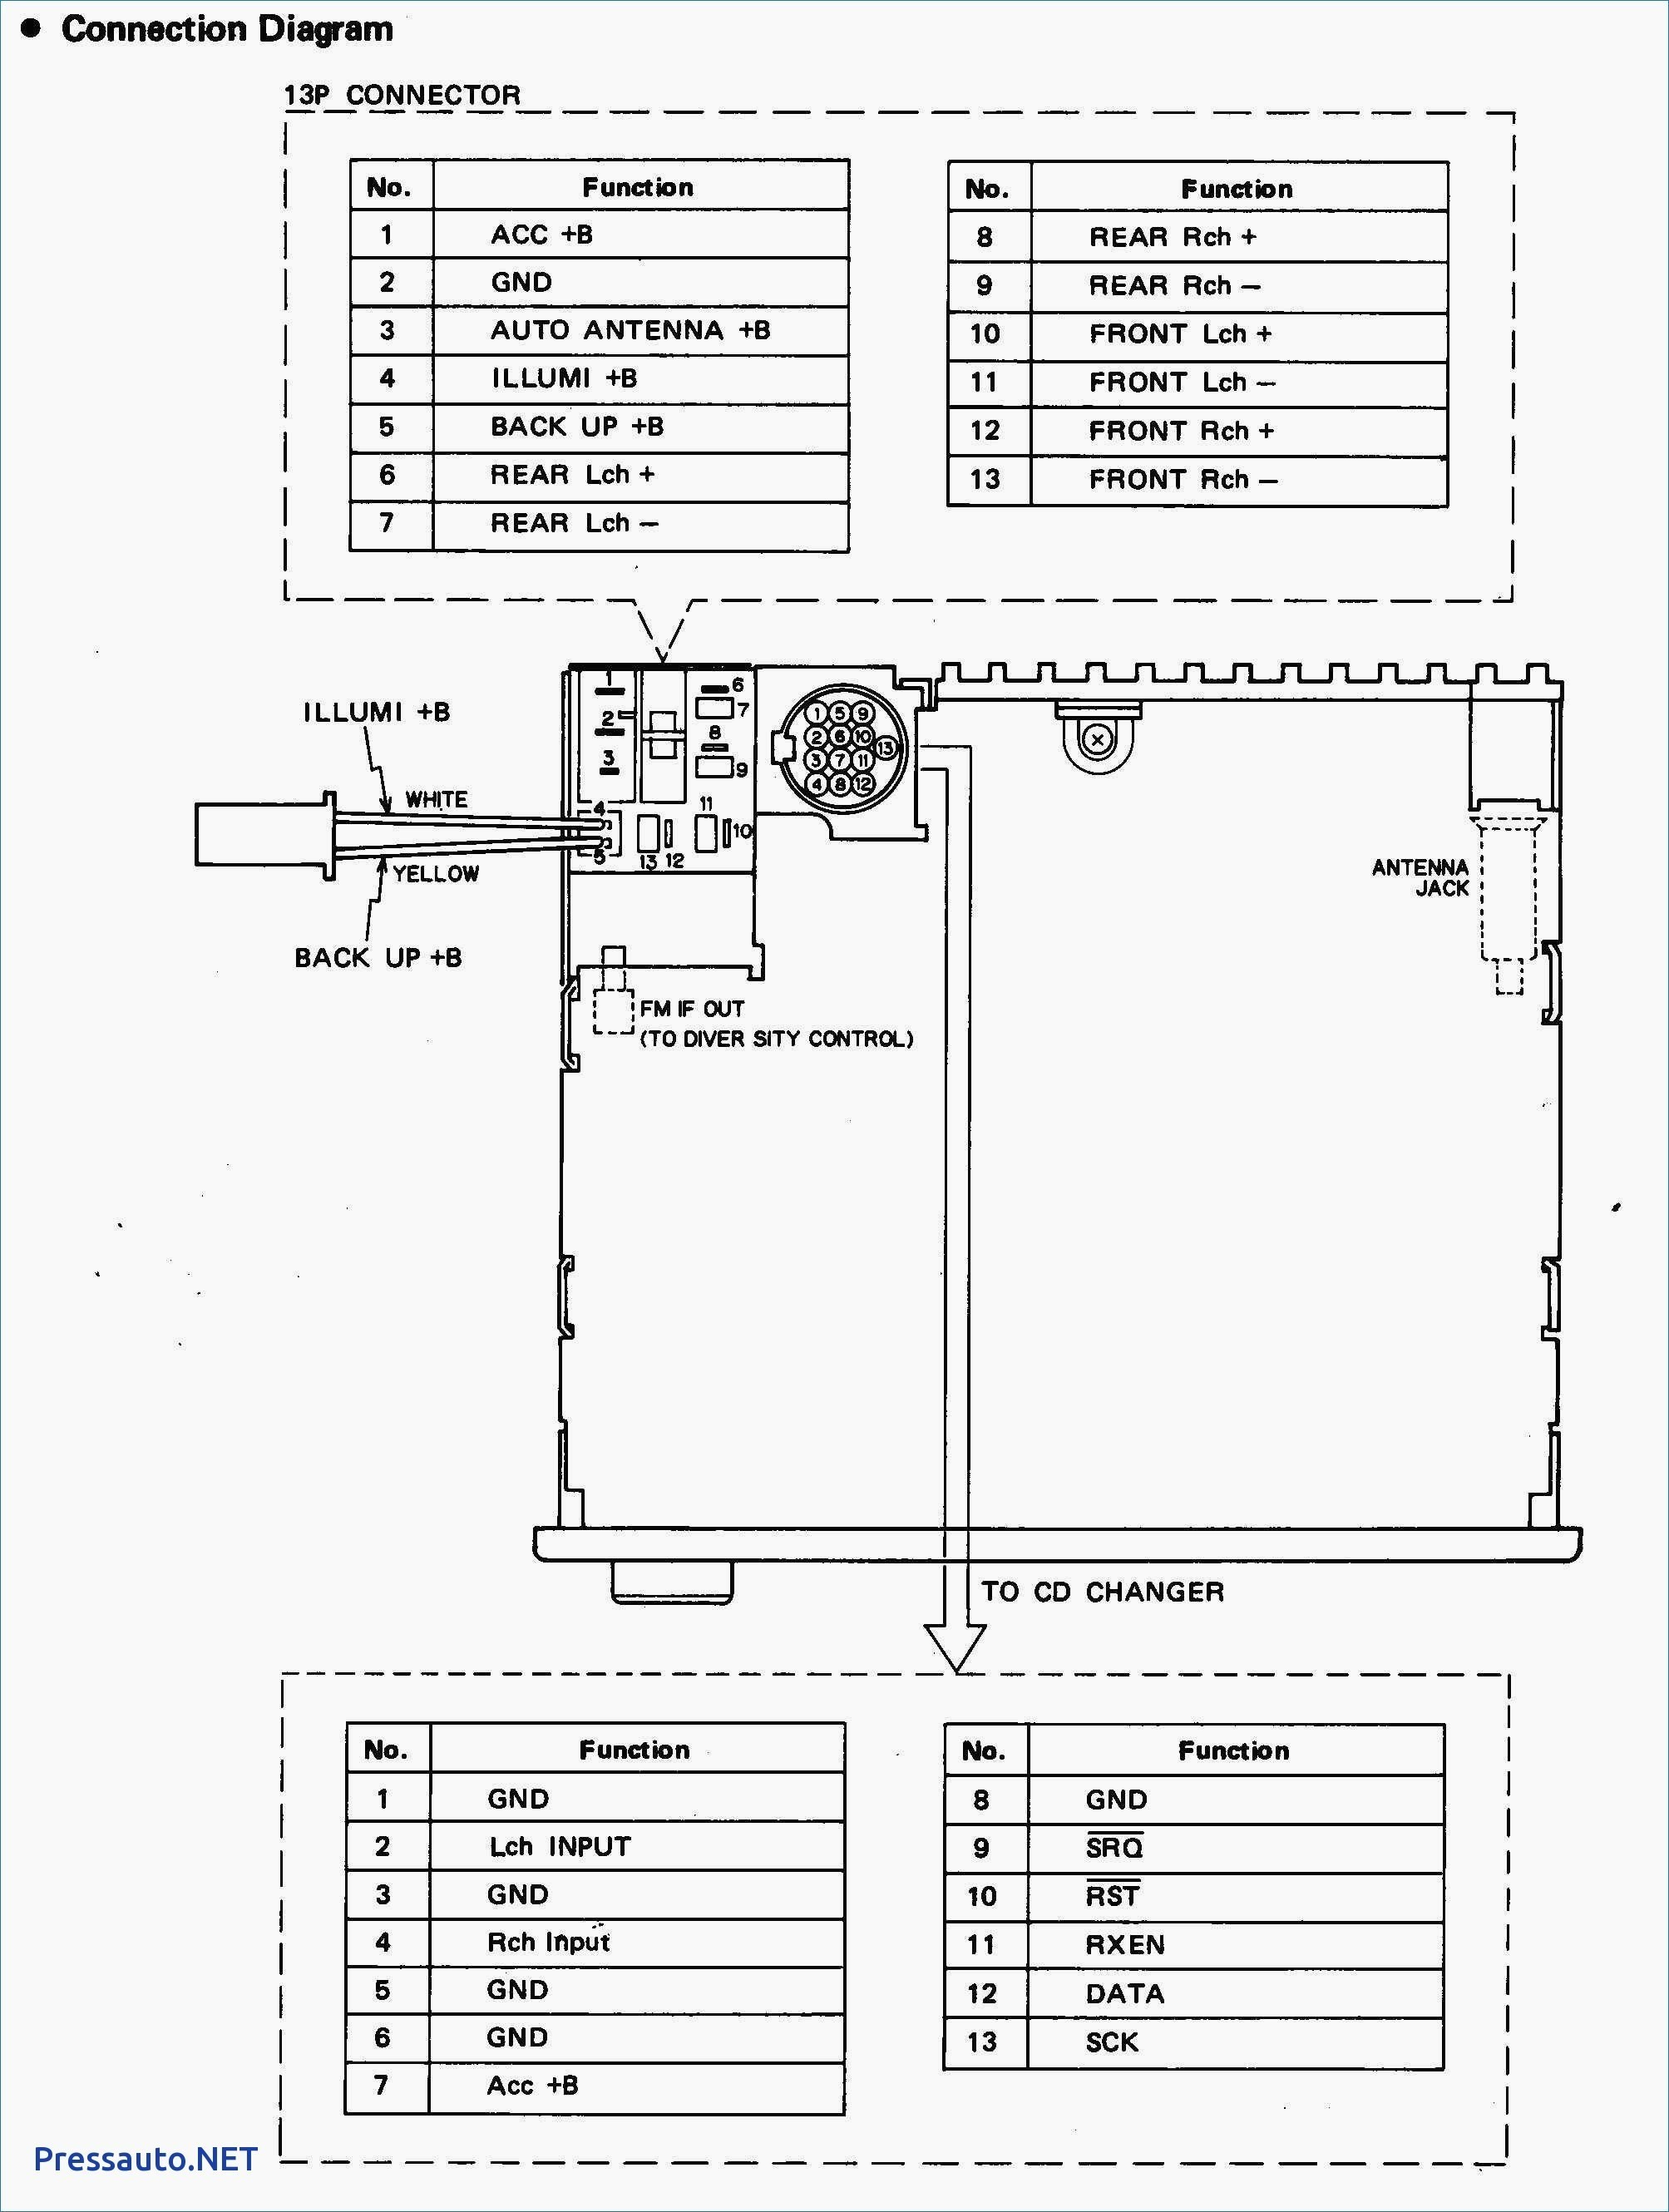 Deh P Wiring Diagram DIY Wiring Diagrams - 6es7138 4ca01 0aa0 wiring diagram